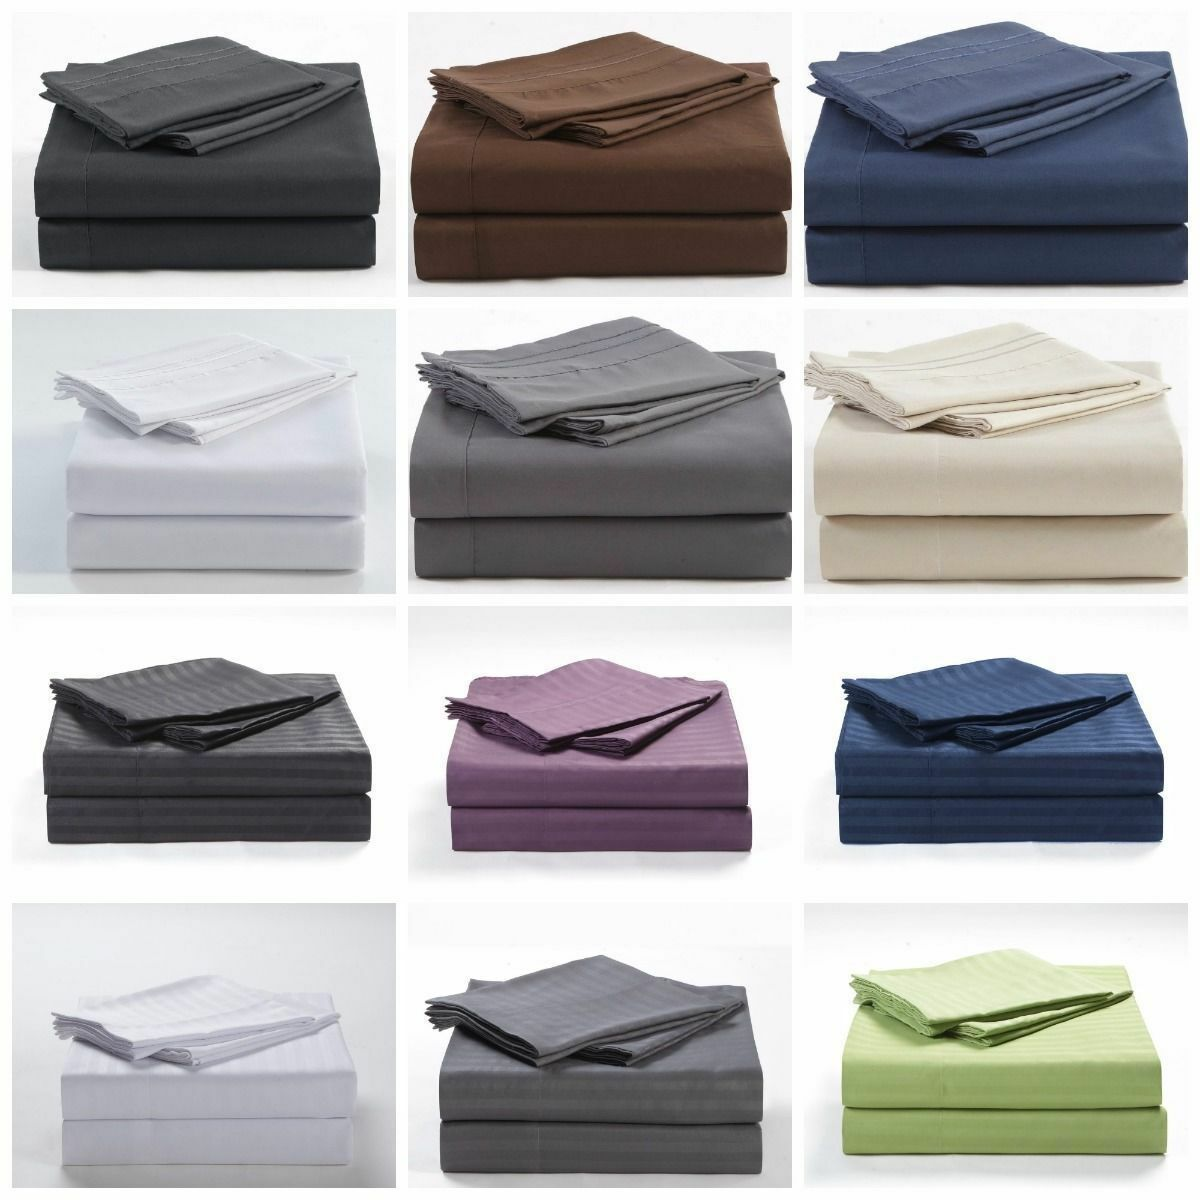 Egyptian Cotton Bed Sheet Set All USA Size Multi color 400-TC 15 Inch Drop